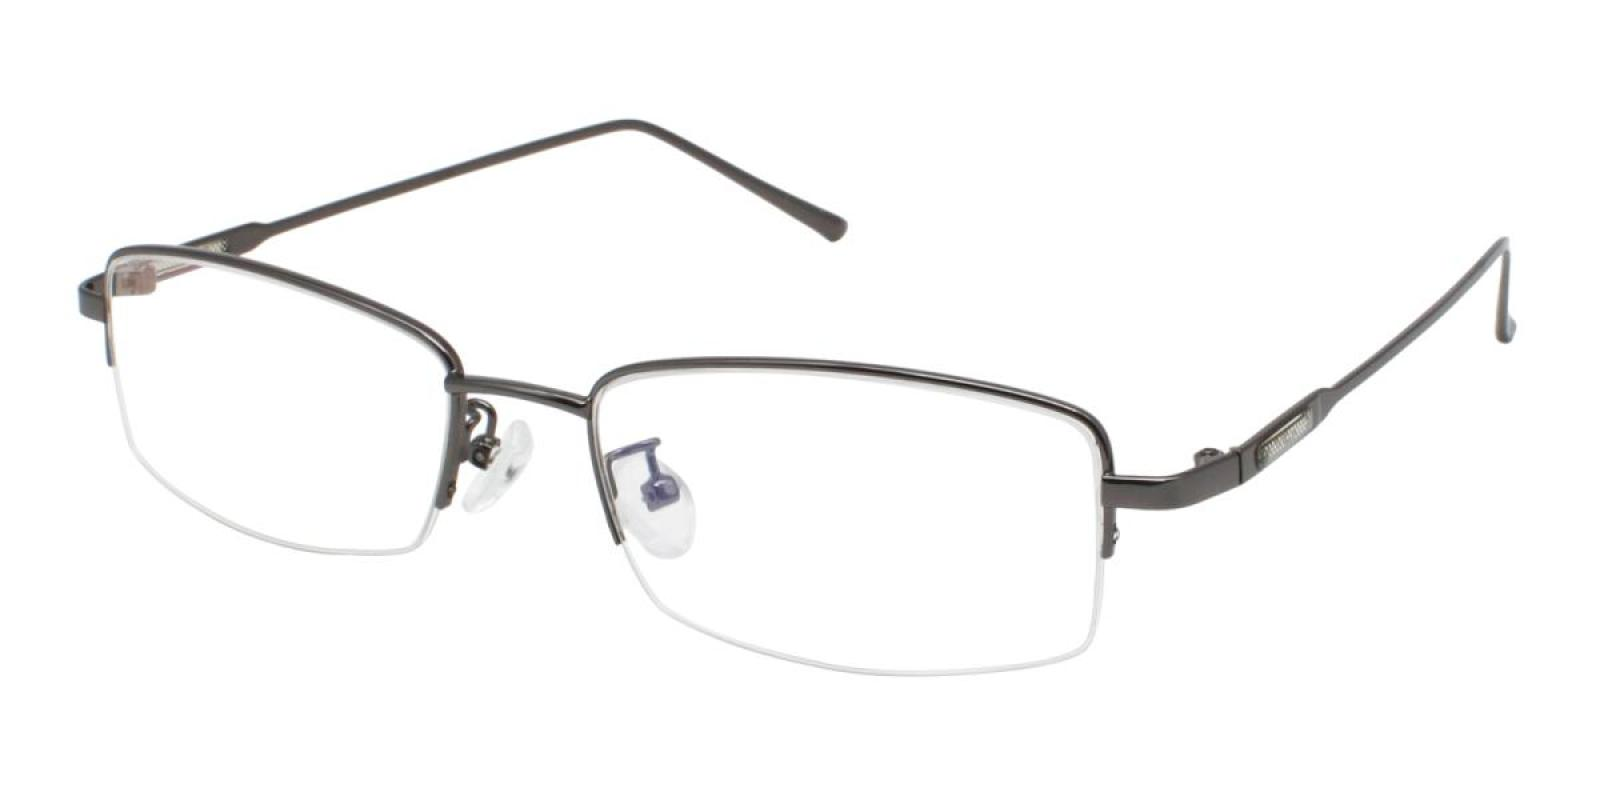 Germantown-Gun-Rectangle-Metal-Eyeglasses-additional1